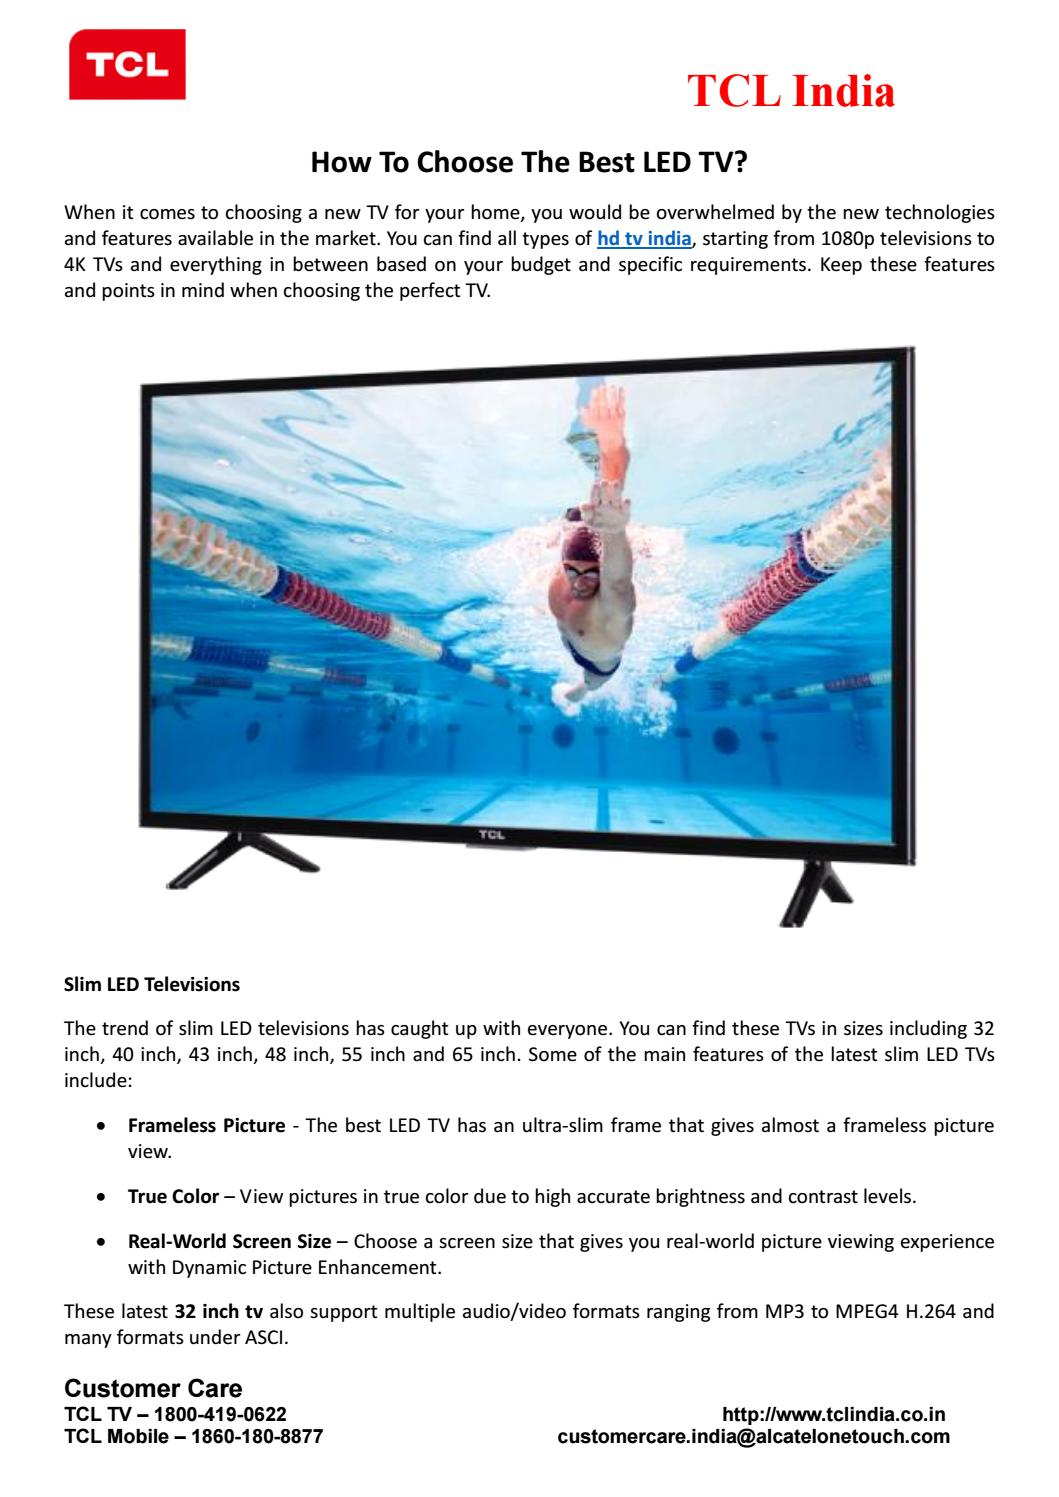 How To Choose The Best LED TV? by Tanjni Pache - issuu